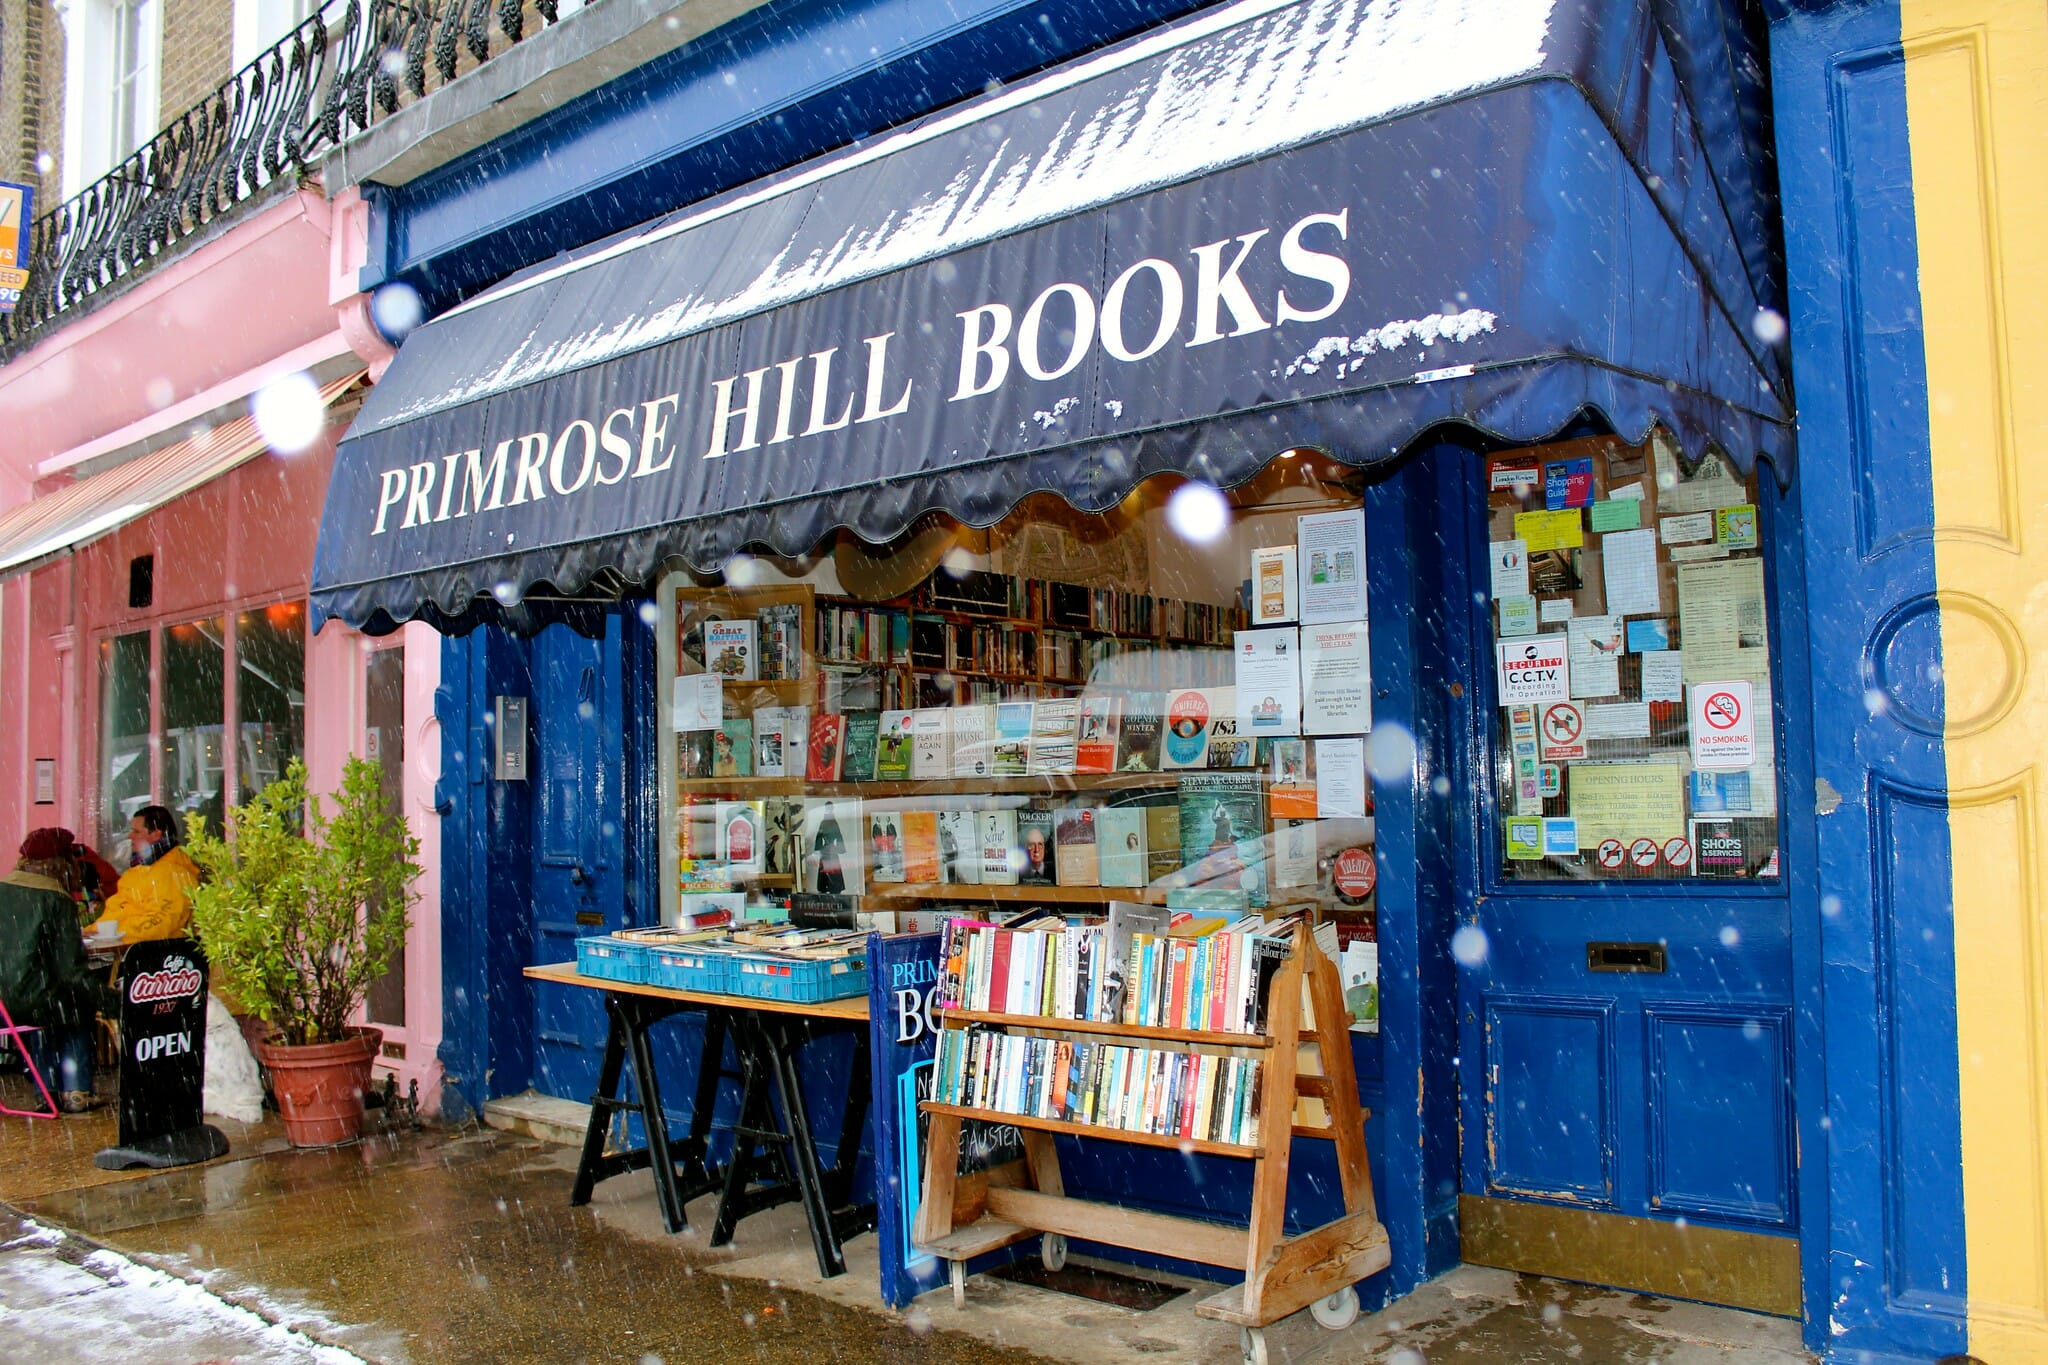 Primrose Hill Books delivery